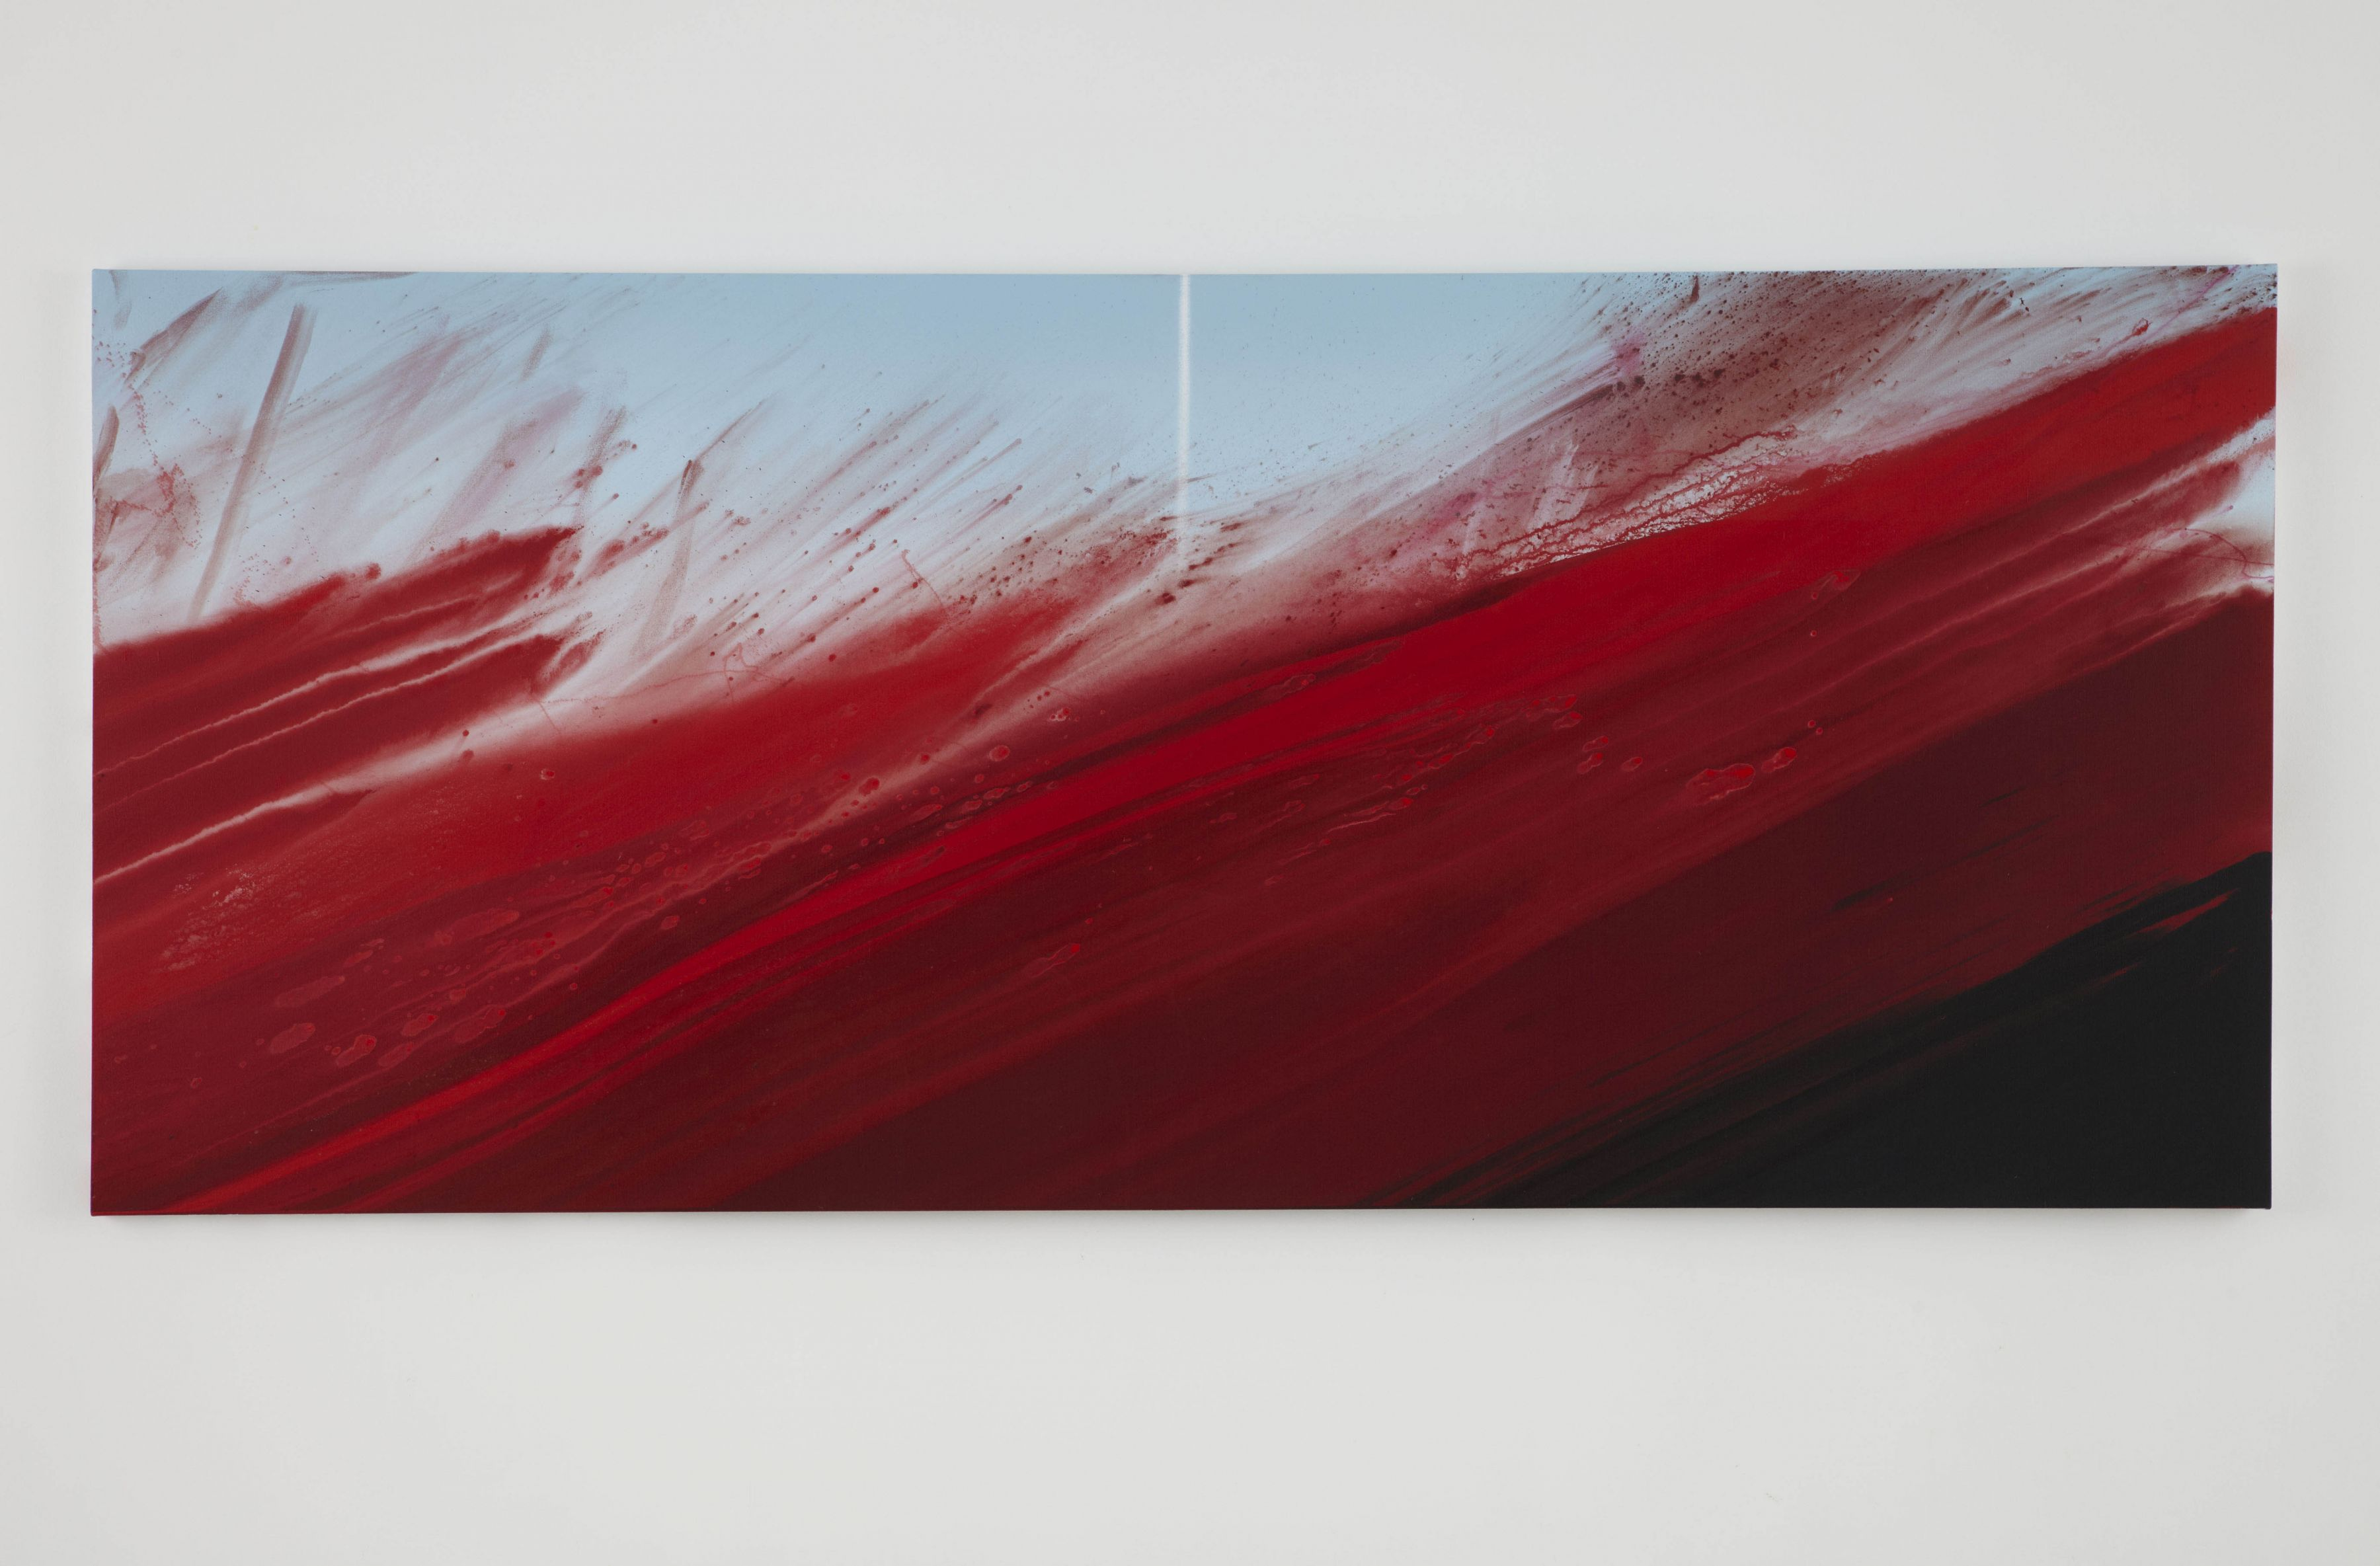 a large horizontal red abstract painting by barnaby furnas in a chelsea art gallery